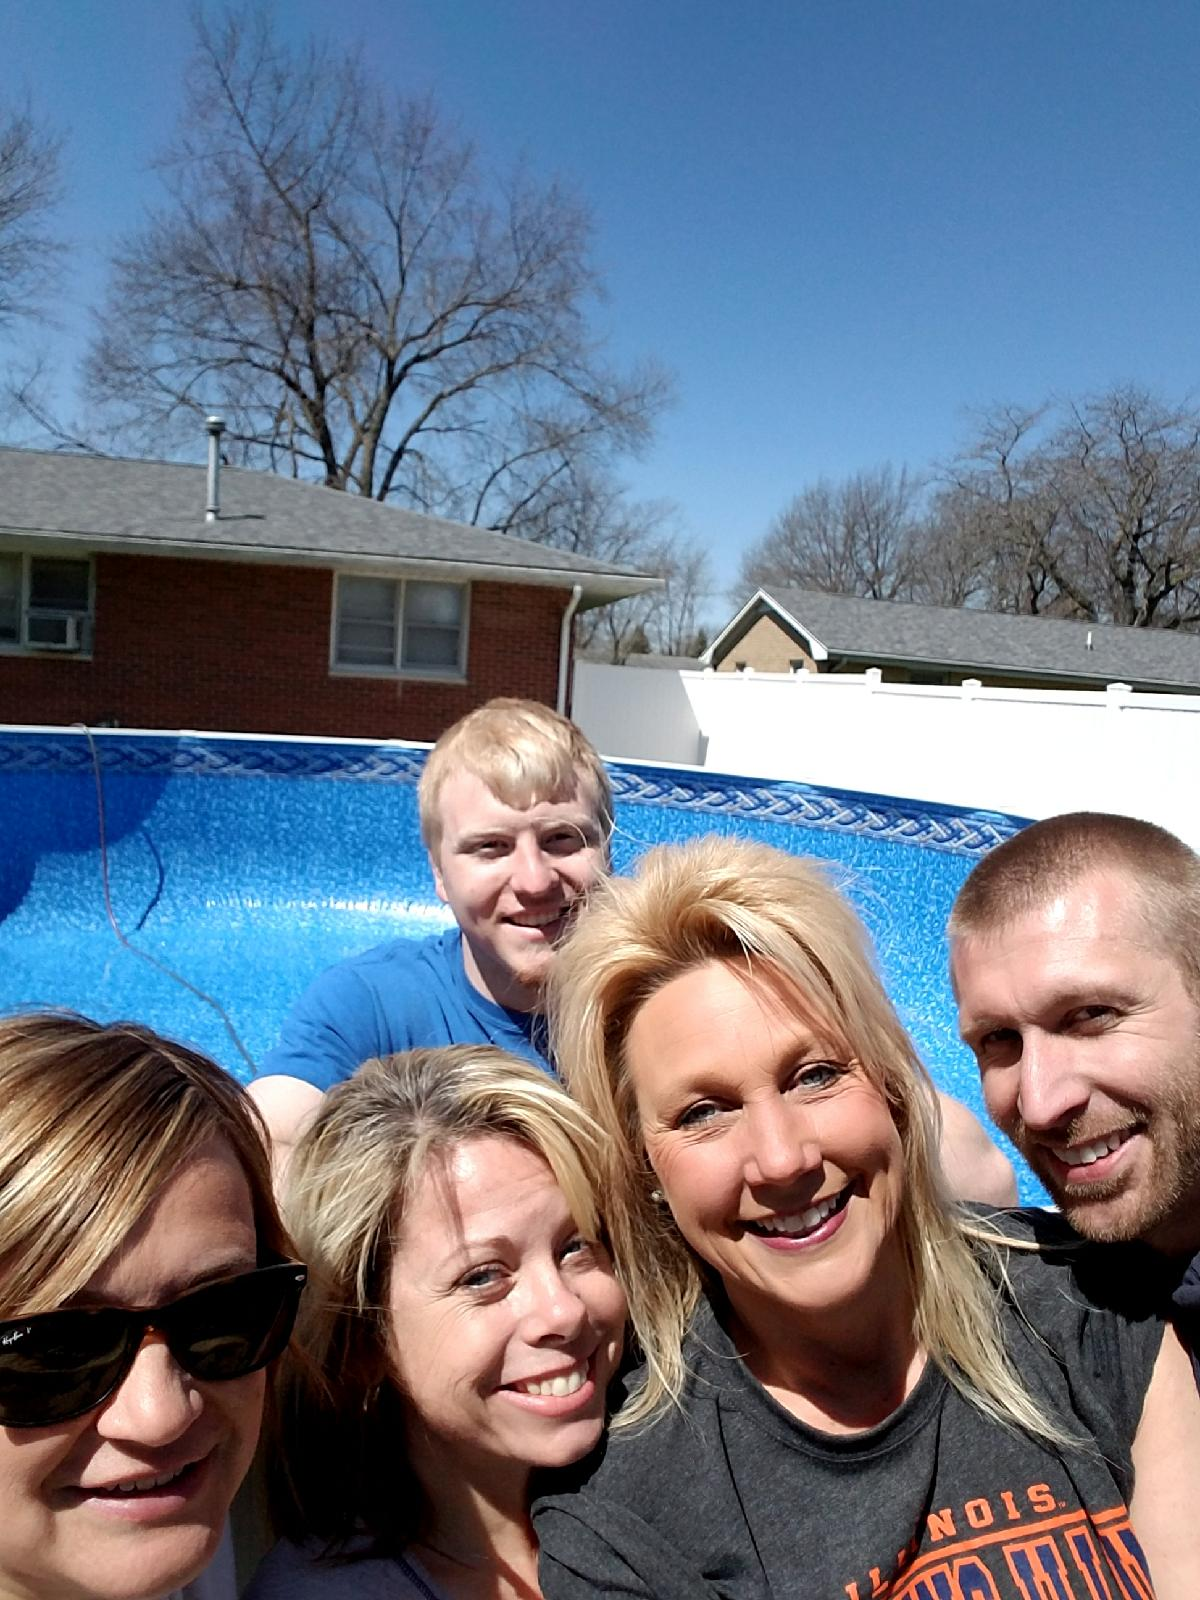 At Illiana Backyard Fun, we believe that pool ownership should be a delight for every home owner. Your swimming pool is your escape from reality and the place where many great memories are made. Our mission is to help each home owner find that sense of happiness in their home by partnering with each customer.